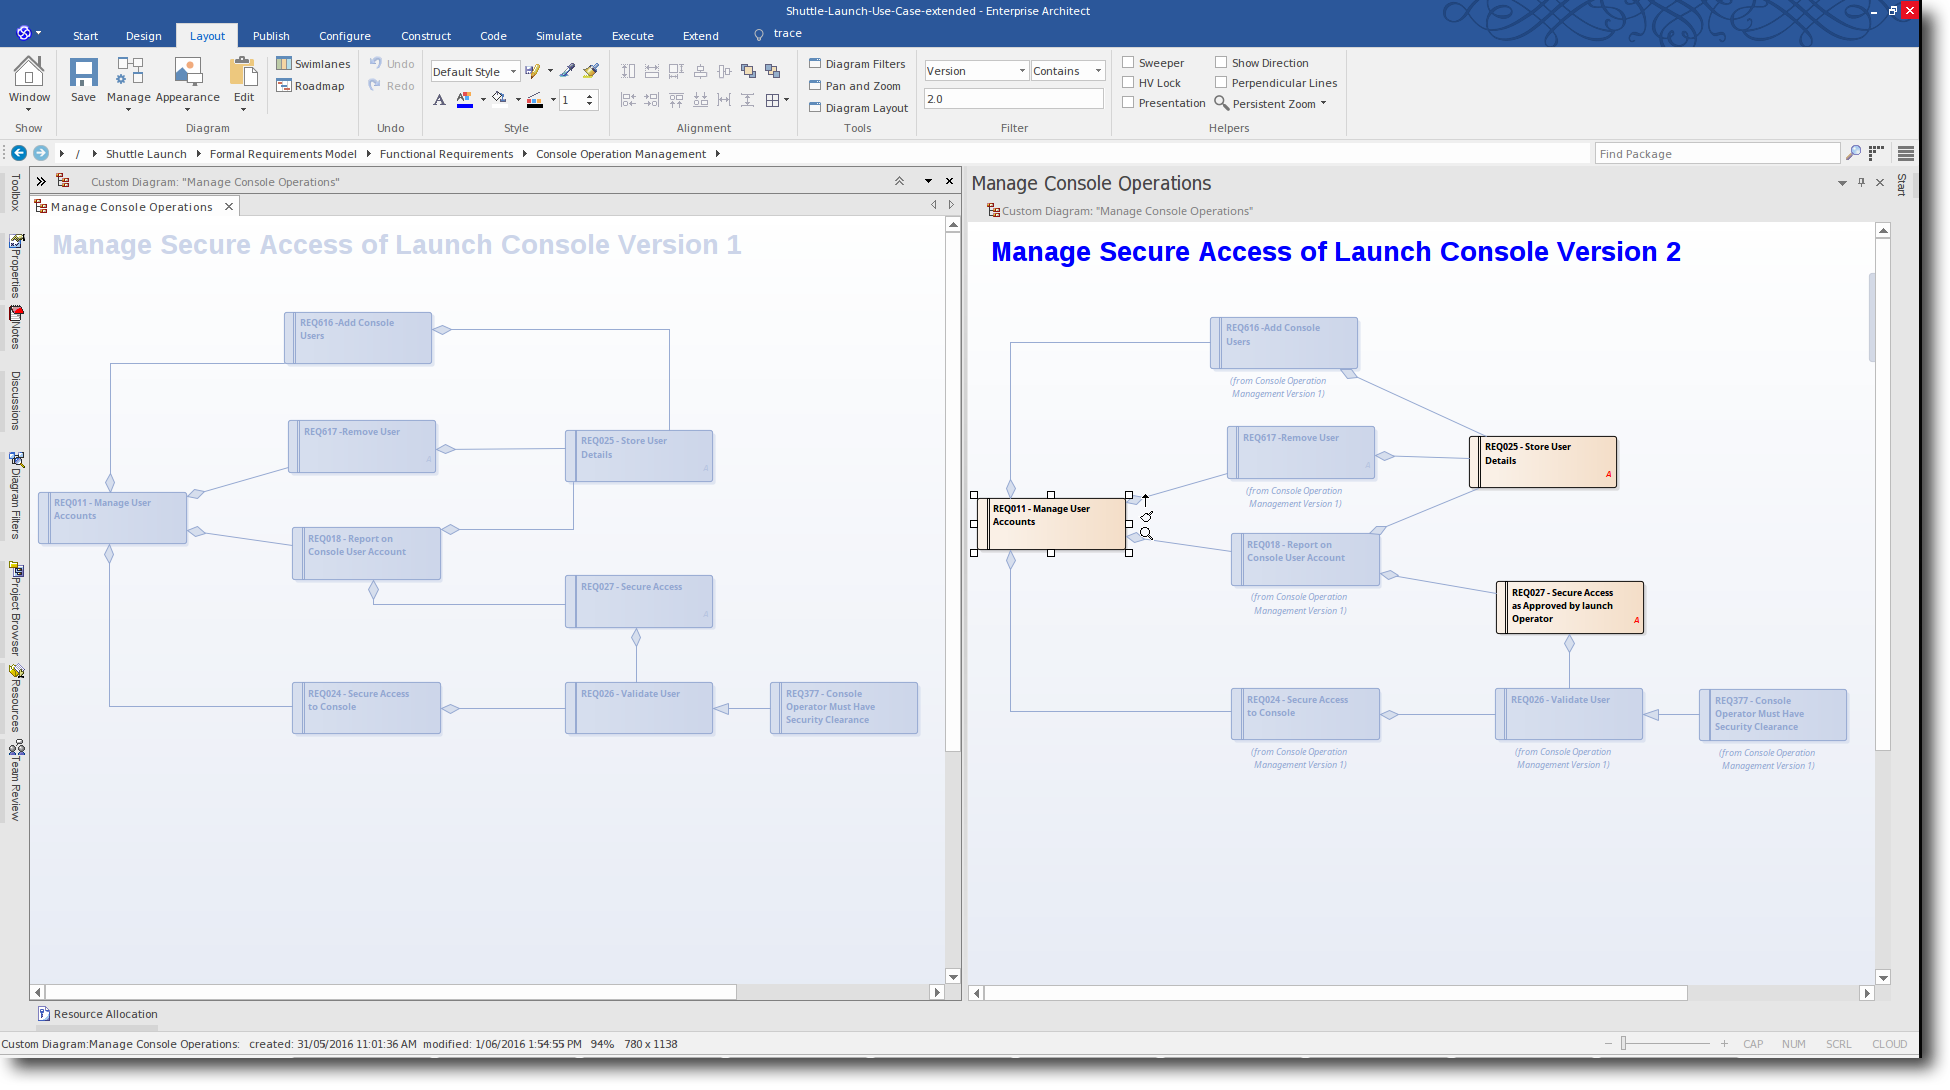 Enterprise Architect 13: Time Aware Modeling - New Version 2.0 Cloned Element is displayed on-screen